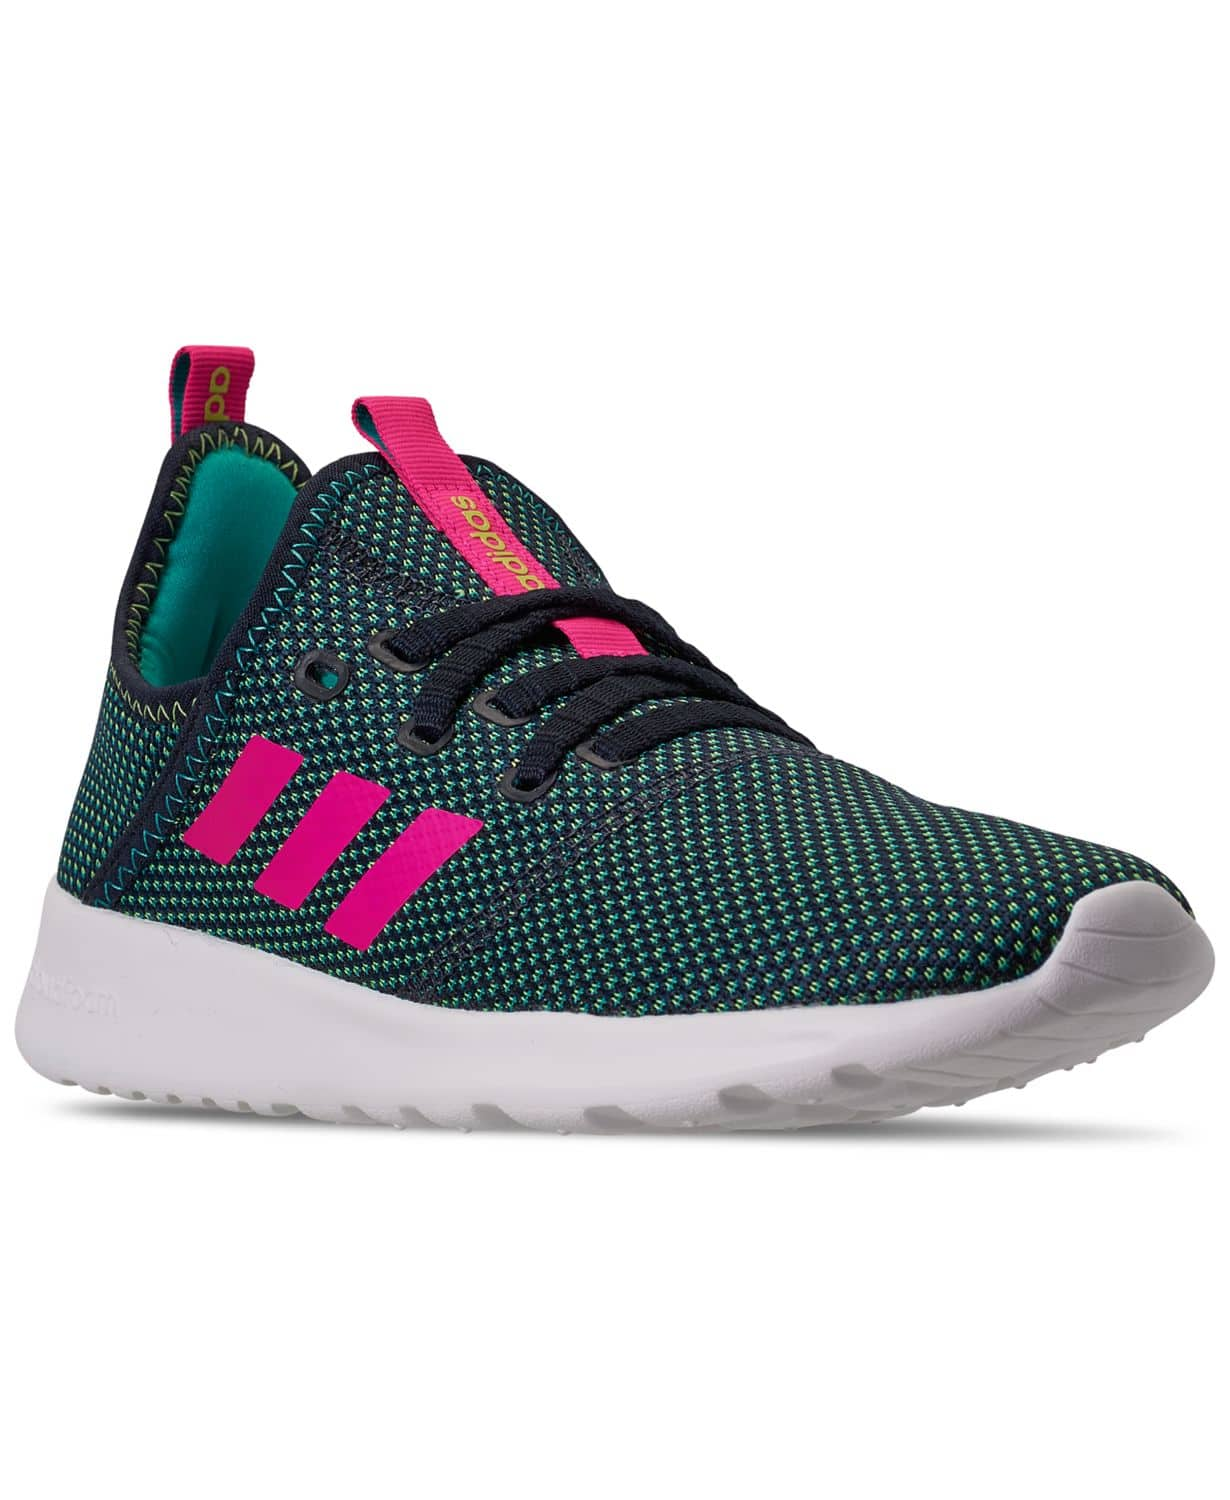 28 Best Shoes images | Running shoes, Shoes, Adidas sneakers